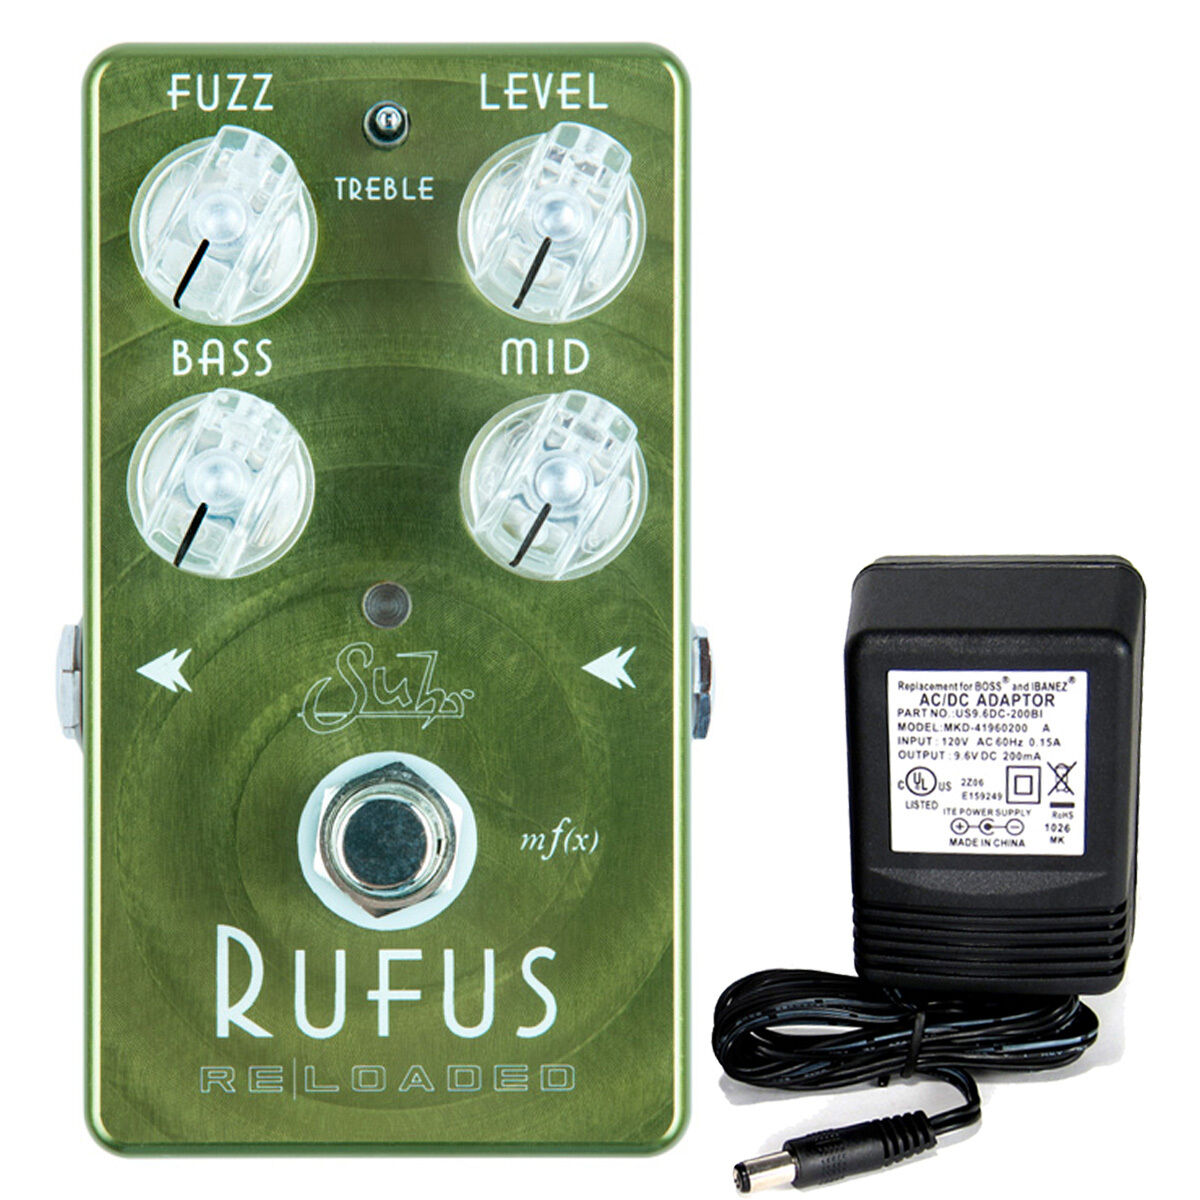 Suhr Rufus Reloaded Fuzz Pedal W 9v Netzteil